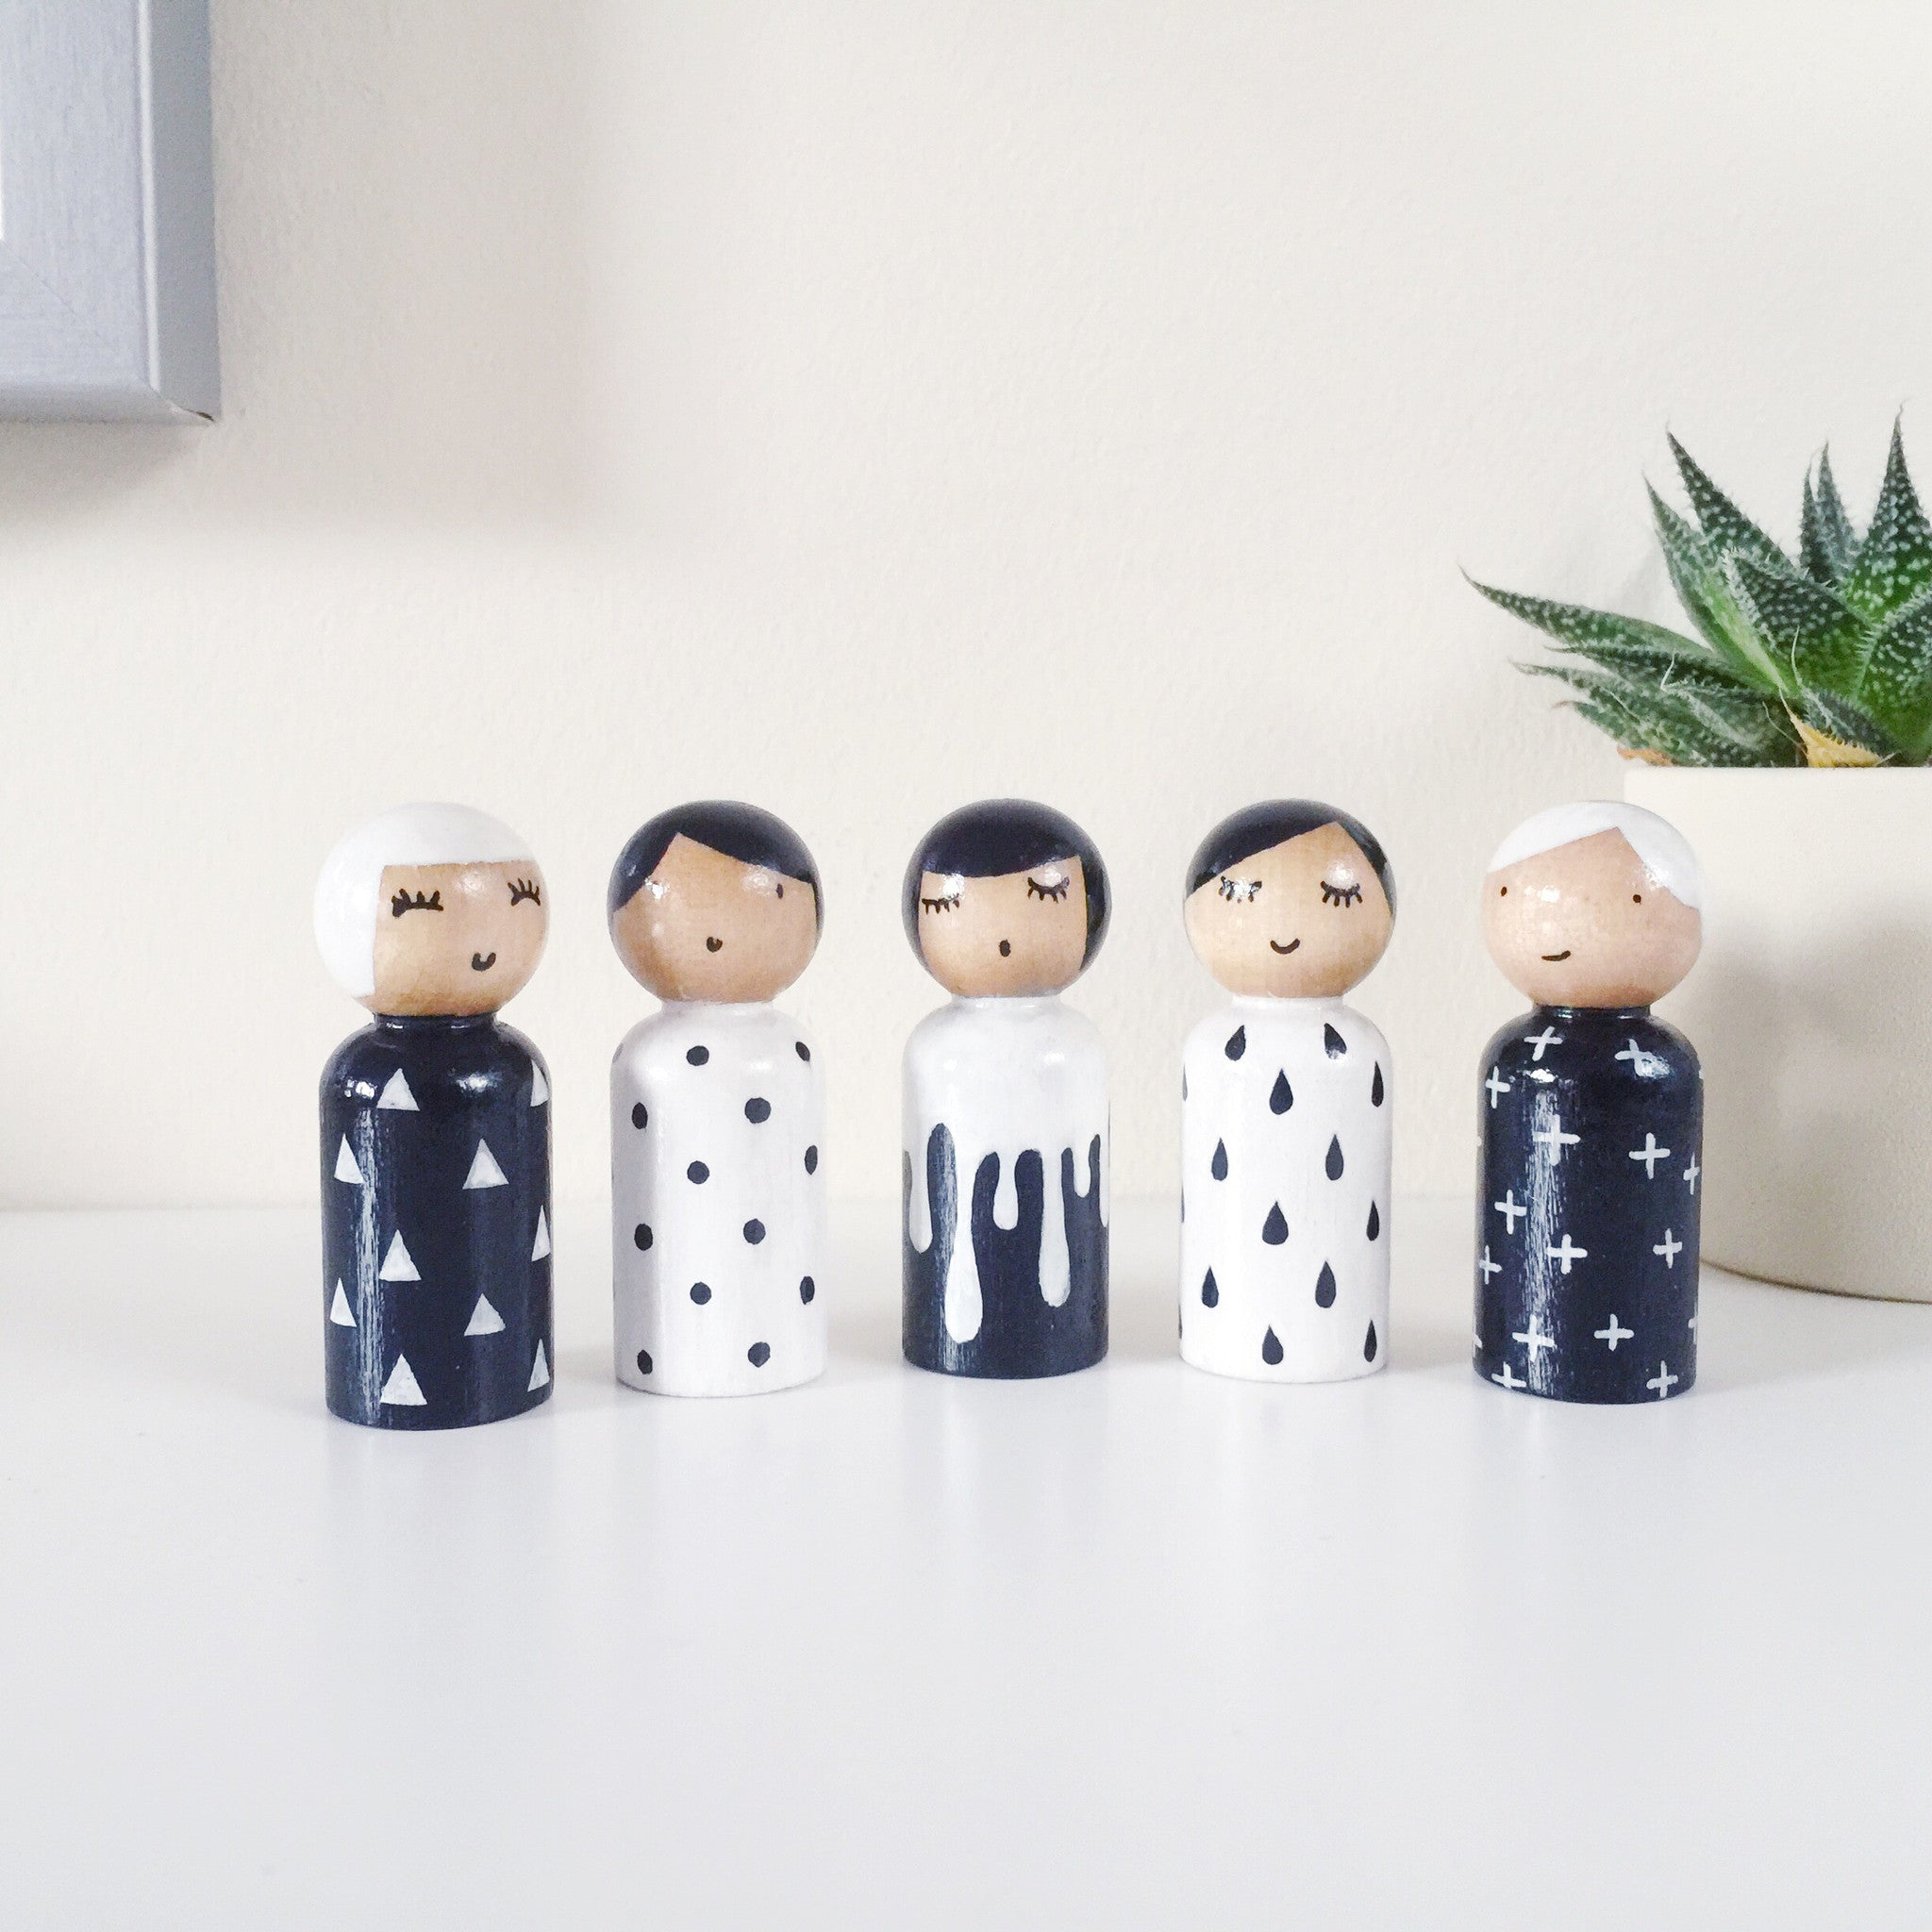 Monochrome peg dolls set.